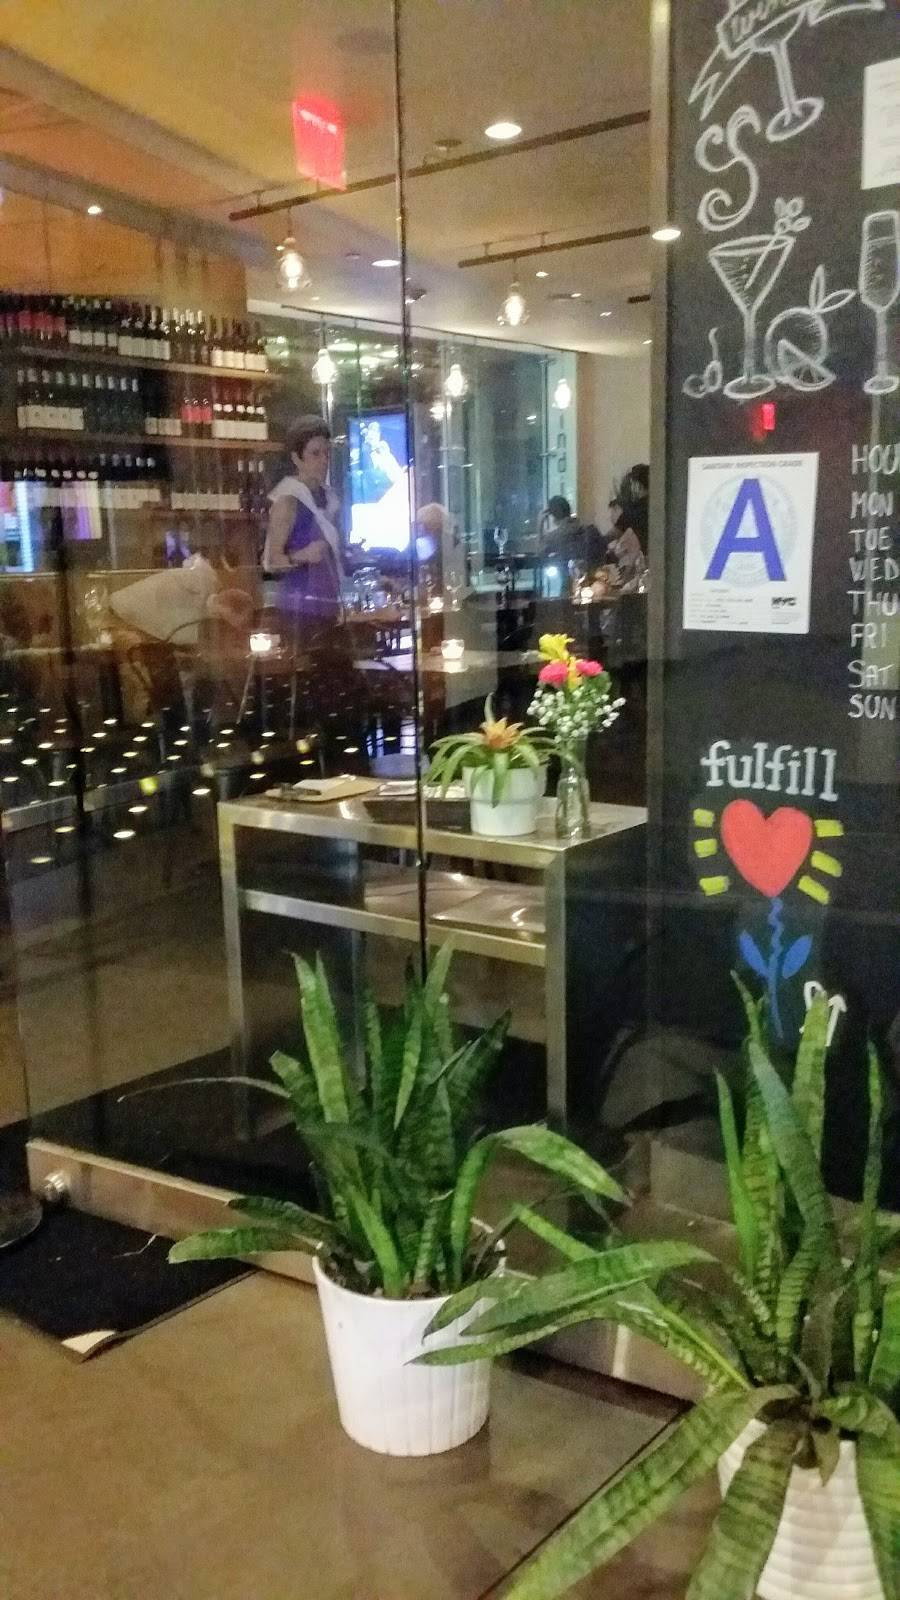 Indie Food & Wine | cafe | 144 W 65th St, New York, NY 10023, USA | 2128755256 OR +1 212-875-5256